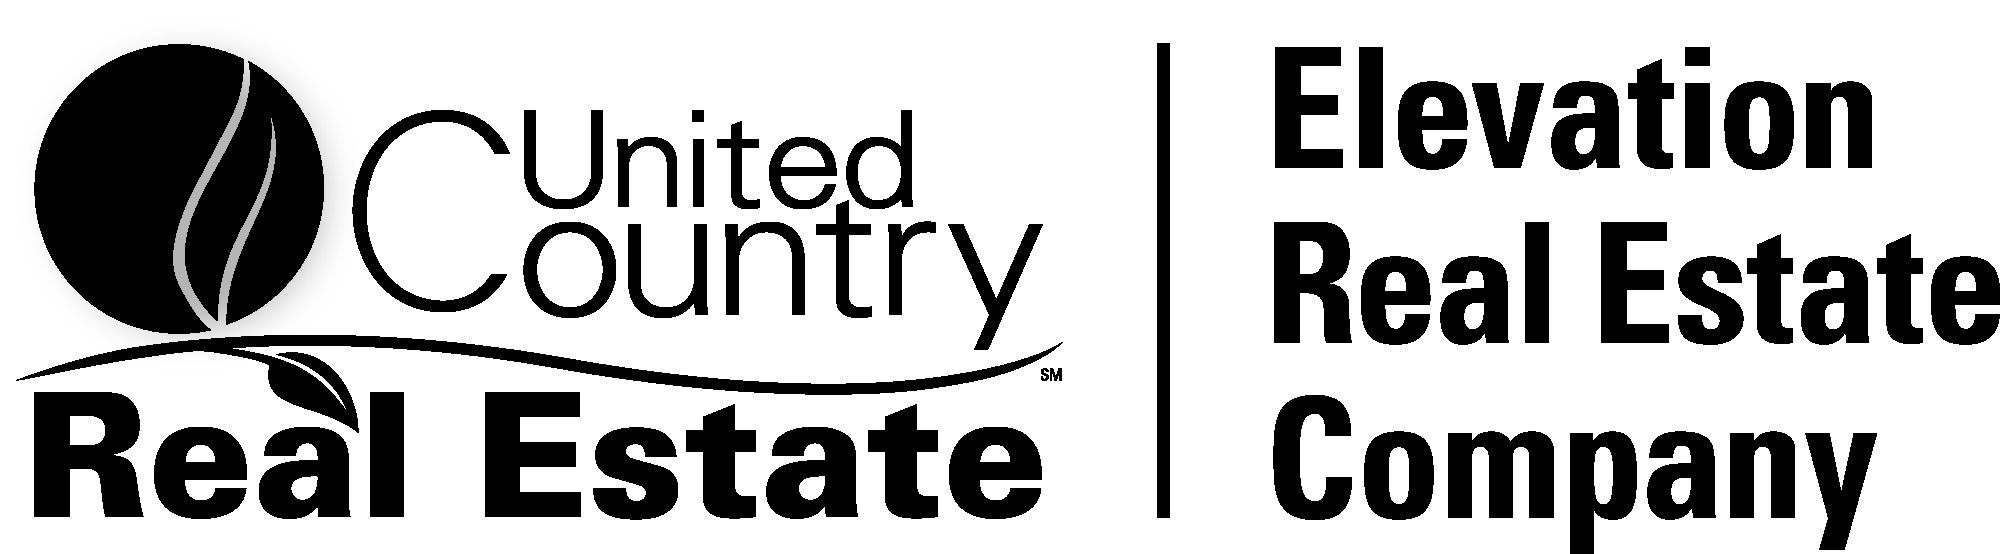 United Country Elevation Real Estate Company